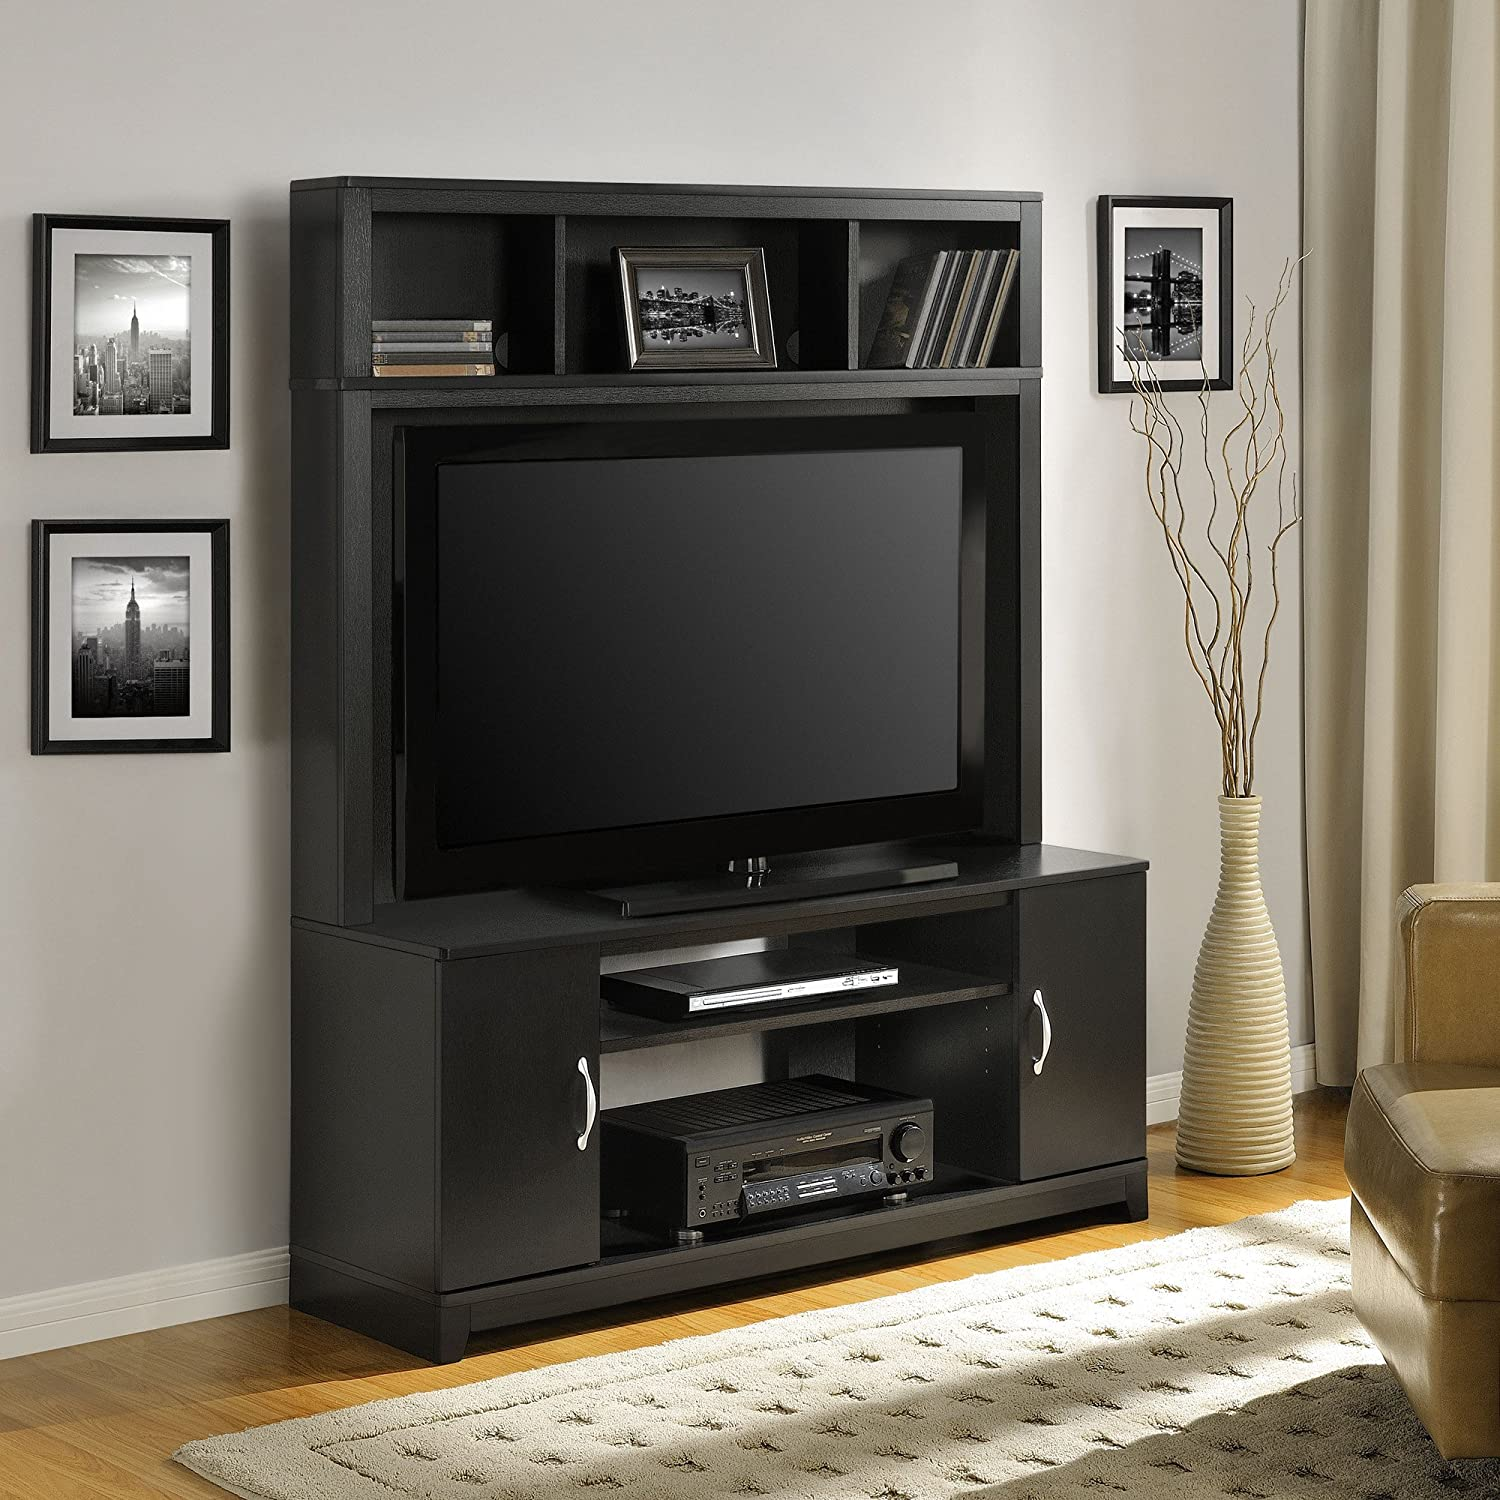 Amazon Home TV Stands Wood Entertainment Media Center for